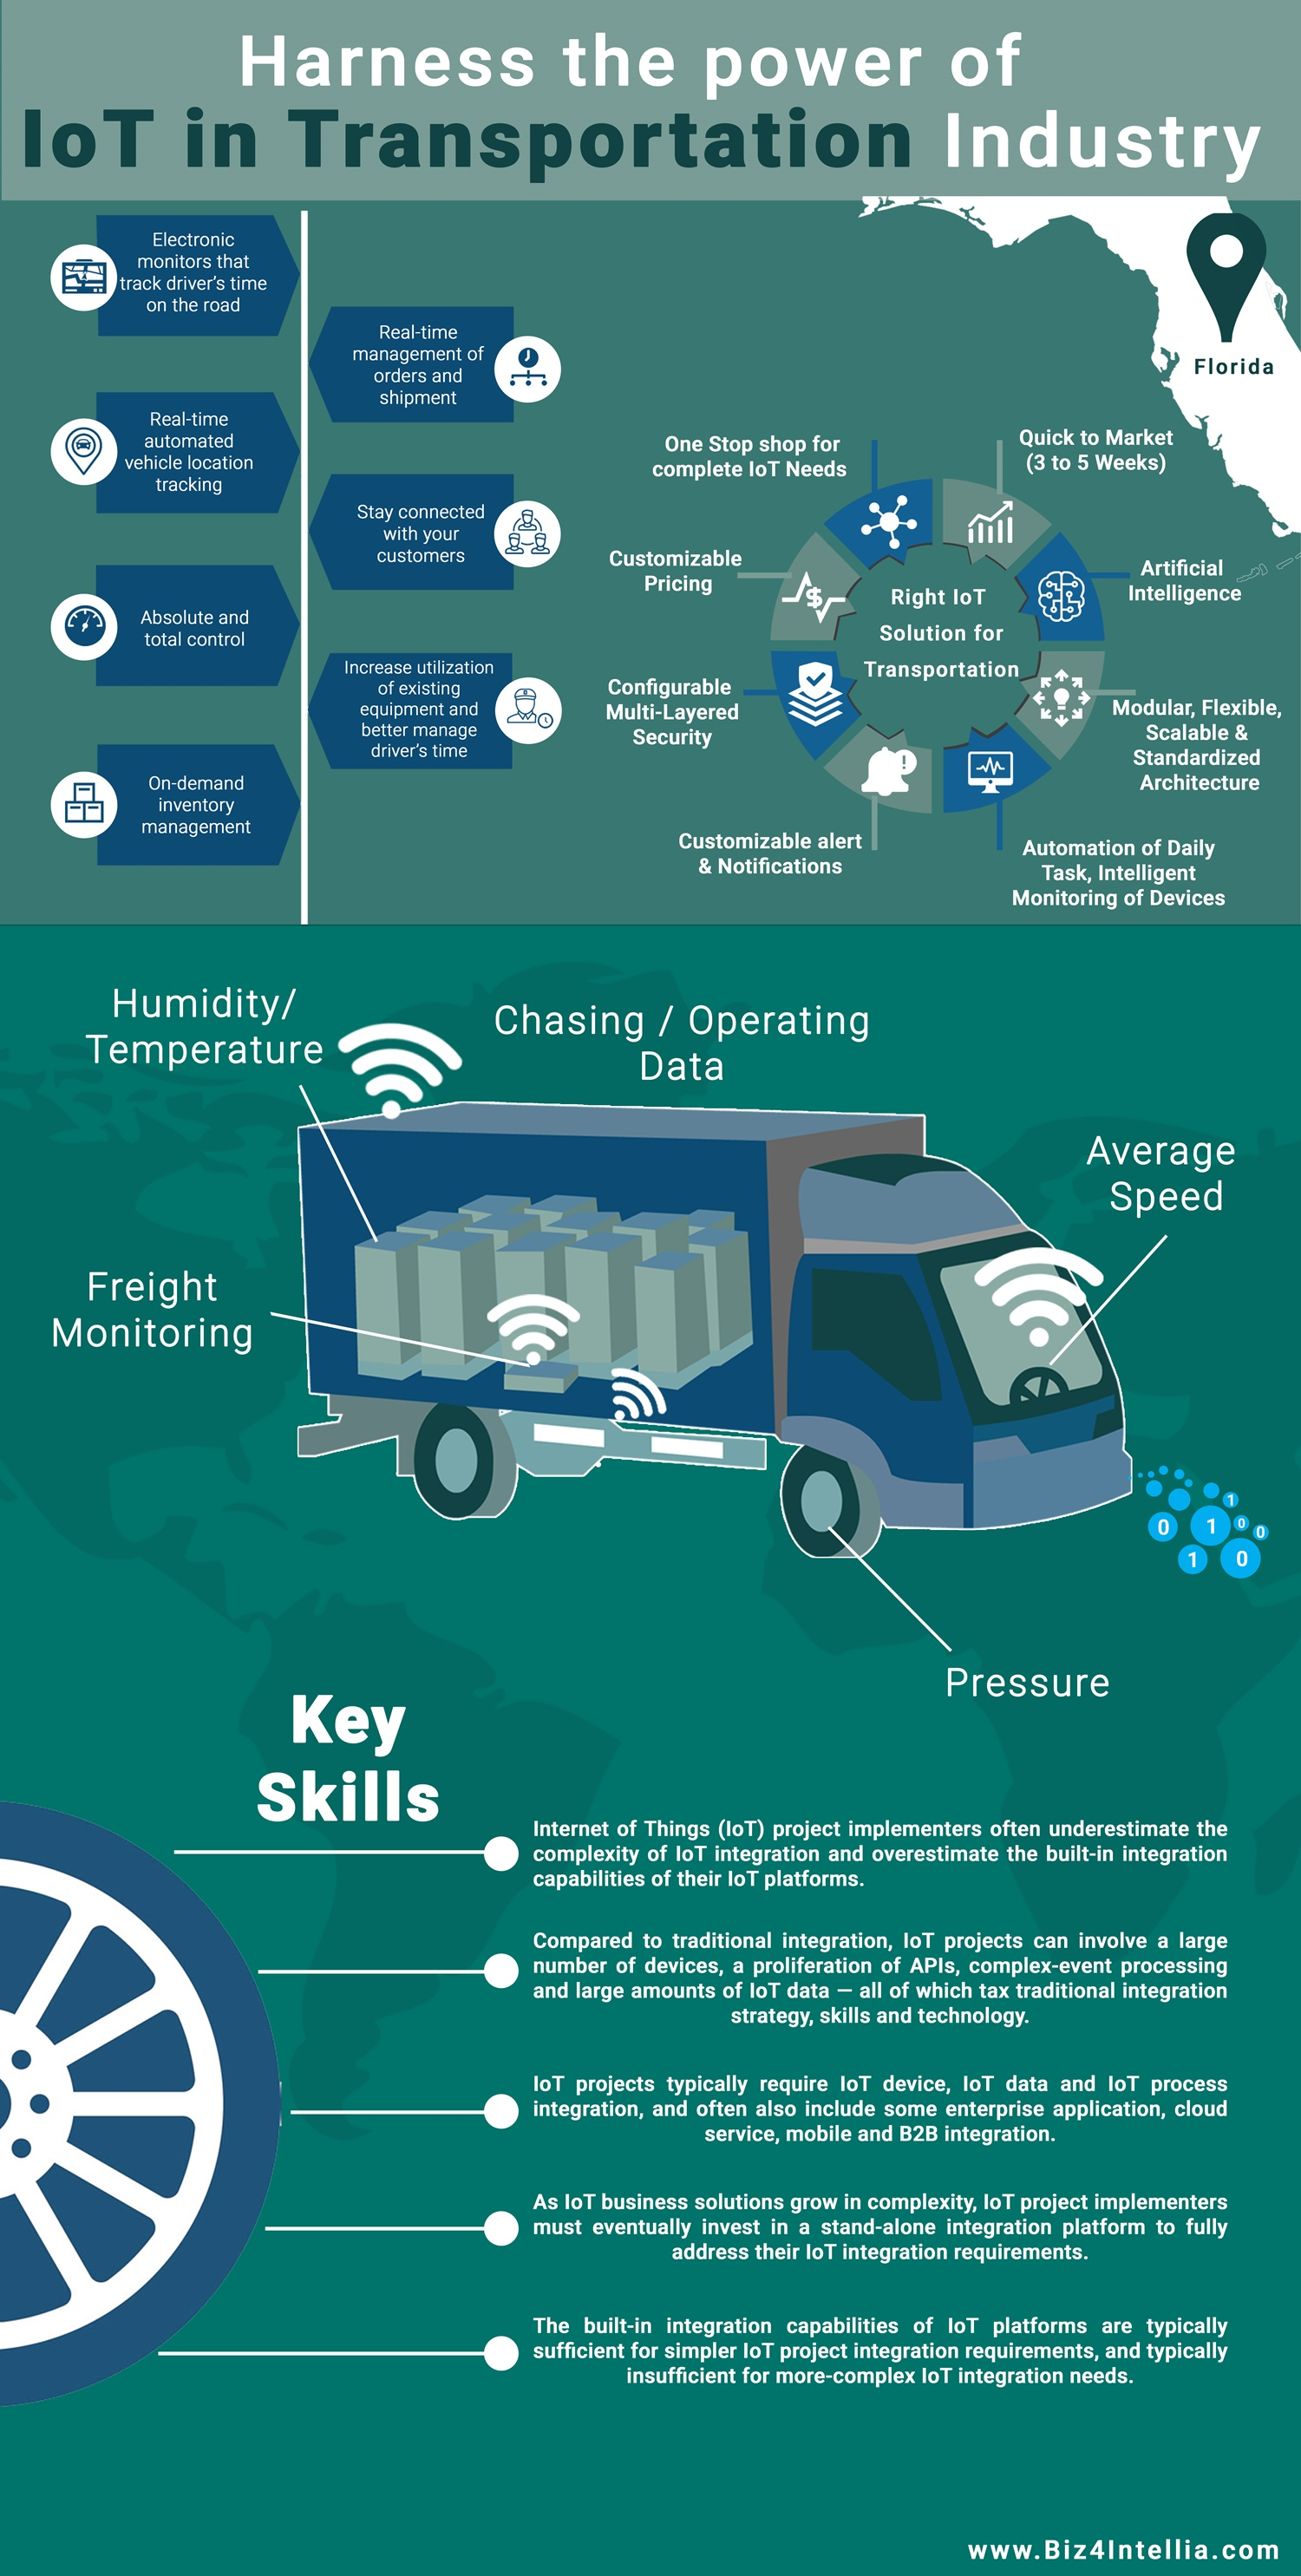 harness-the power-of-iot-in-transportation-industry